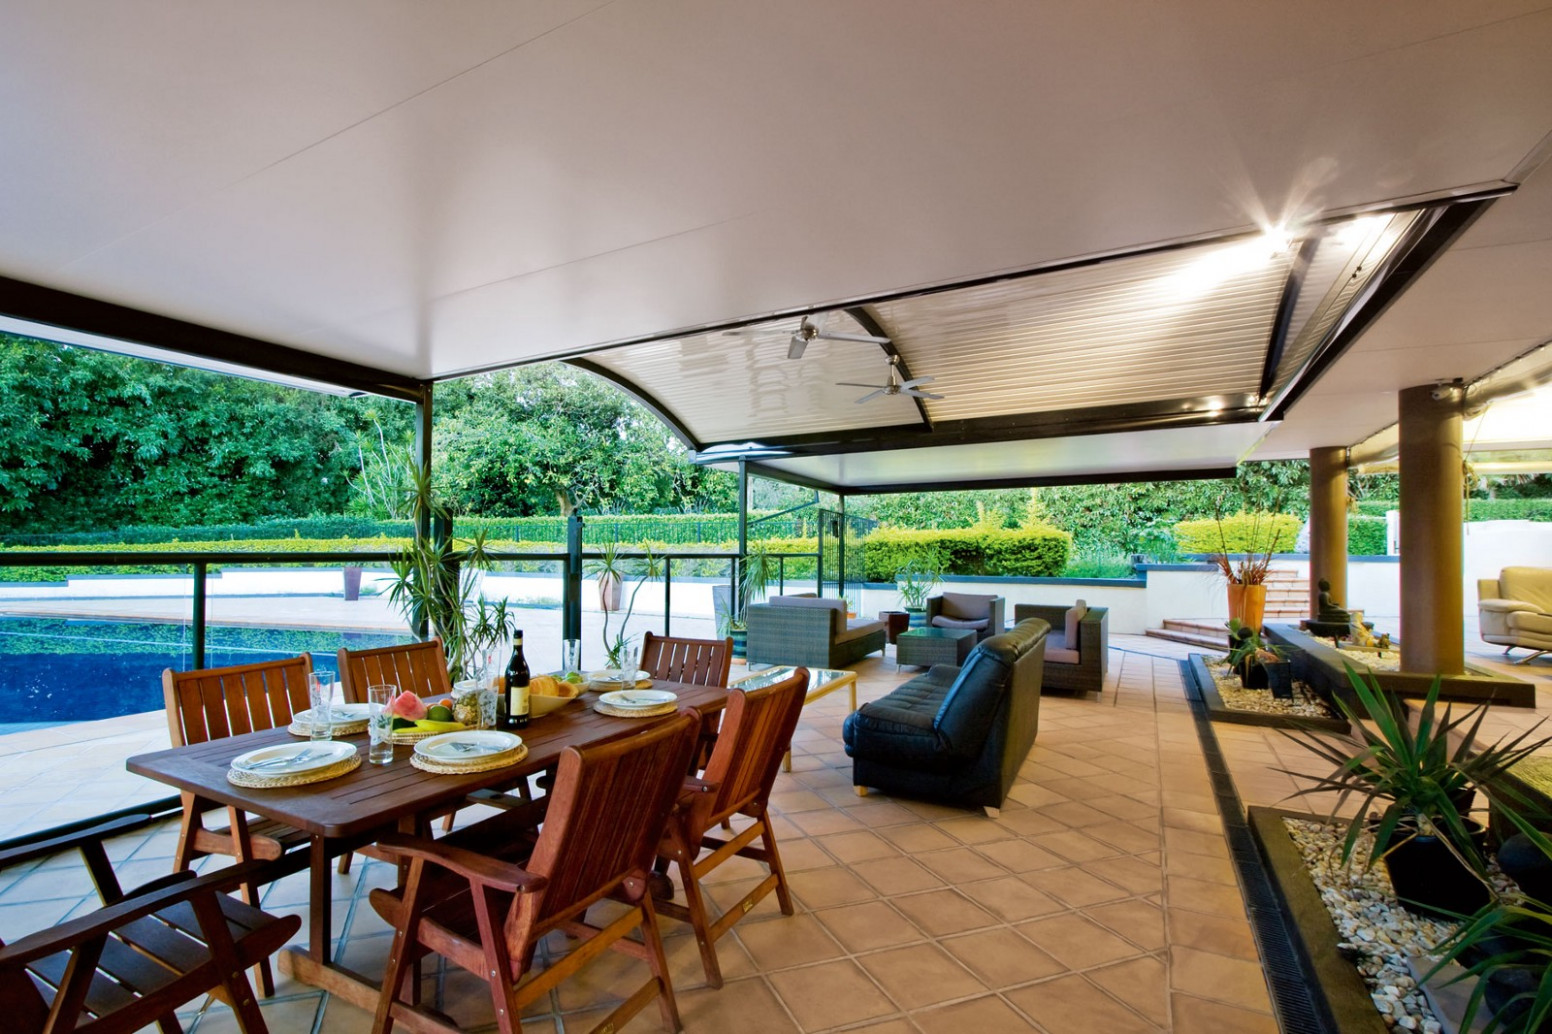 Carport Best Designs That You Can Get At The Cheapest Price